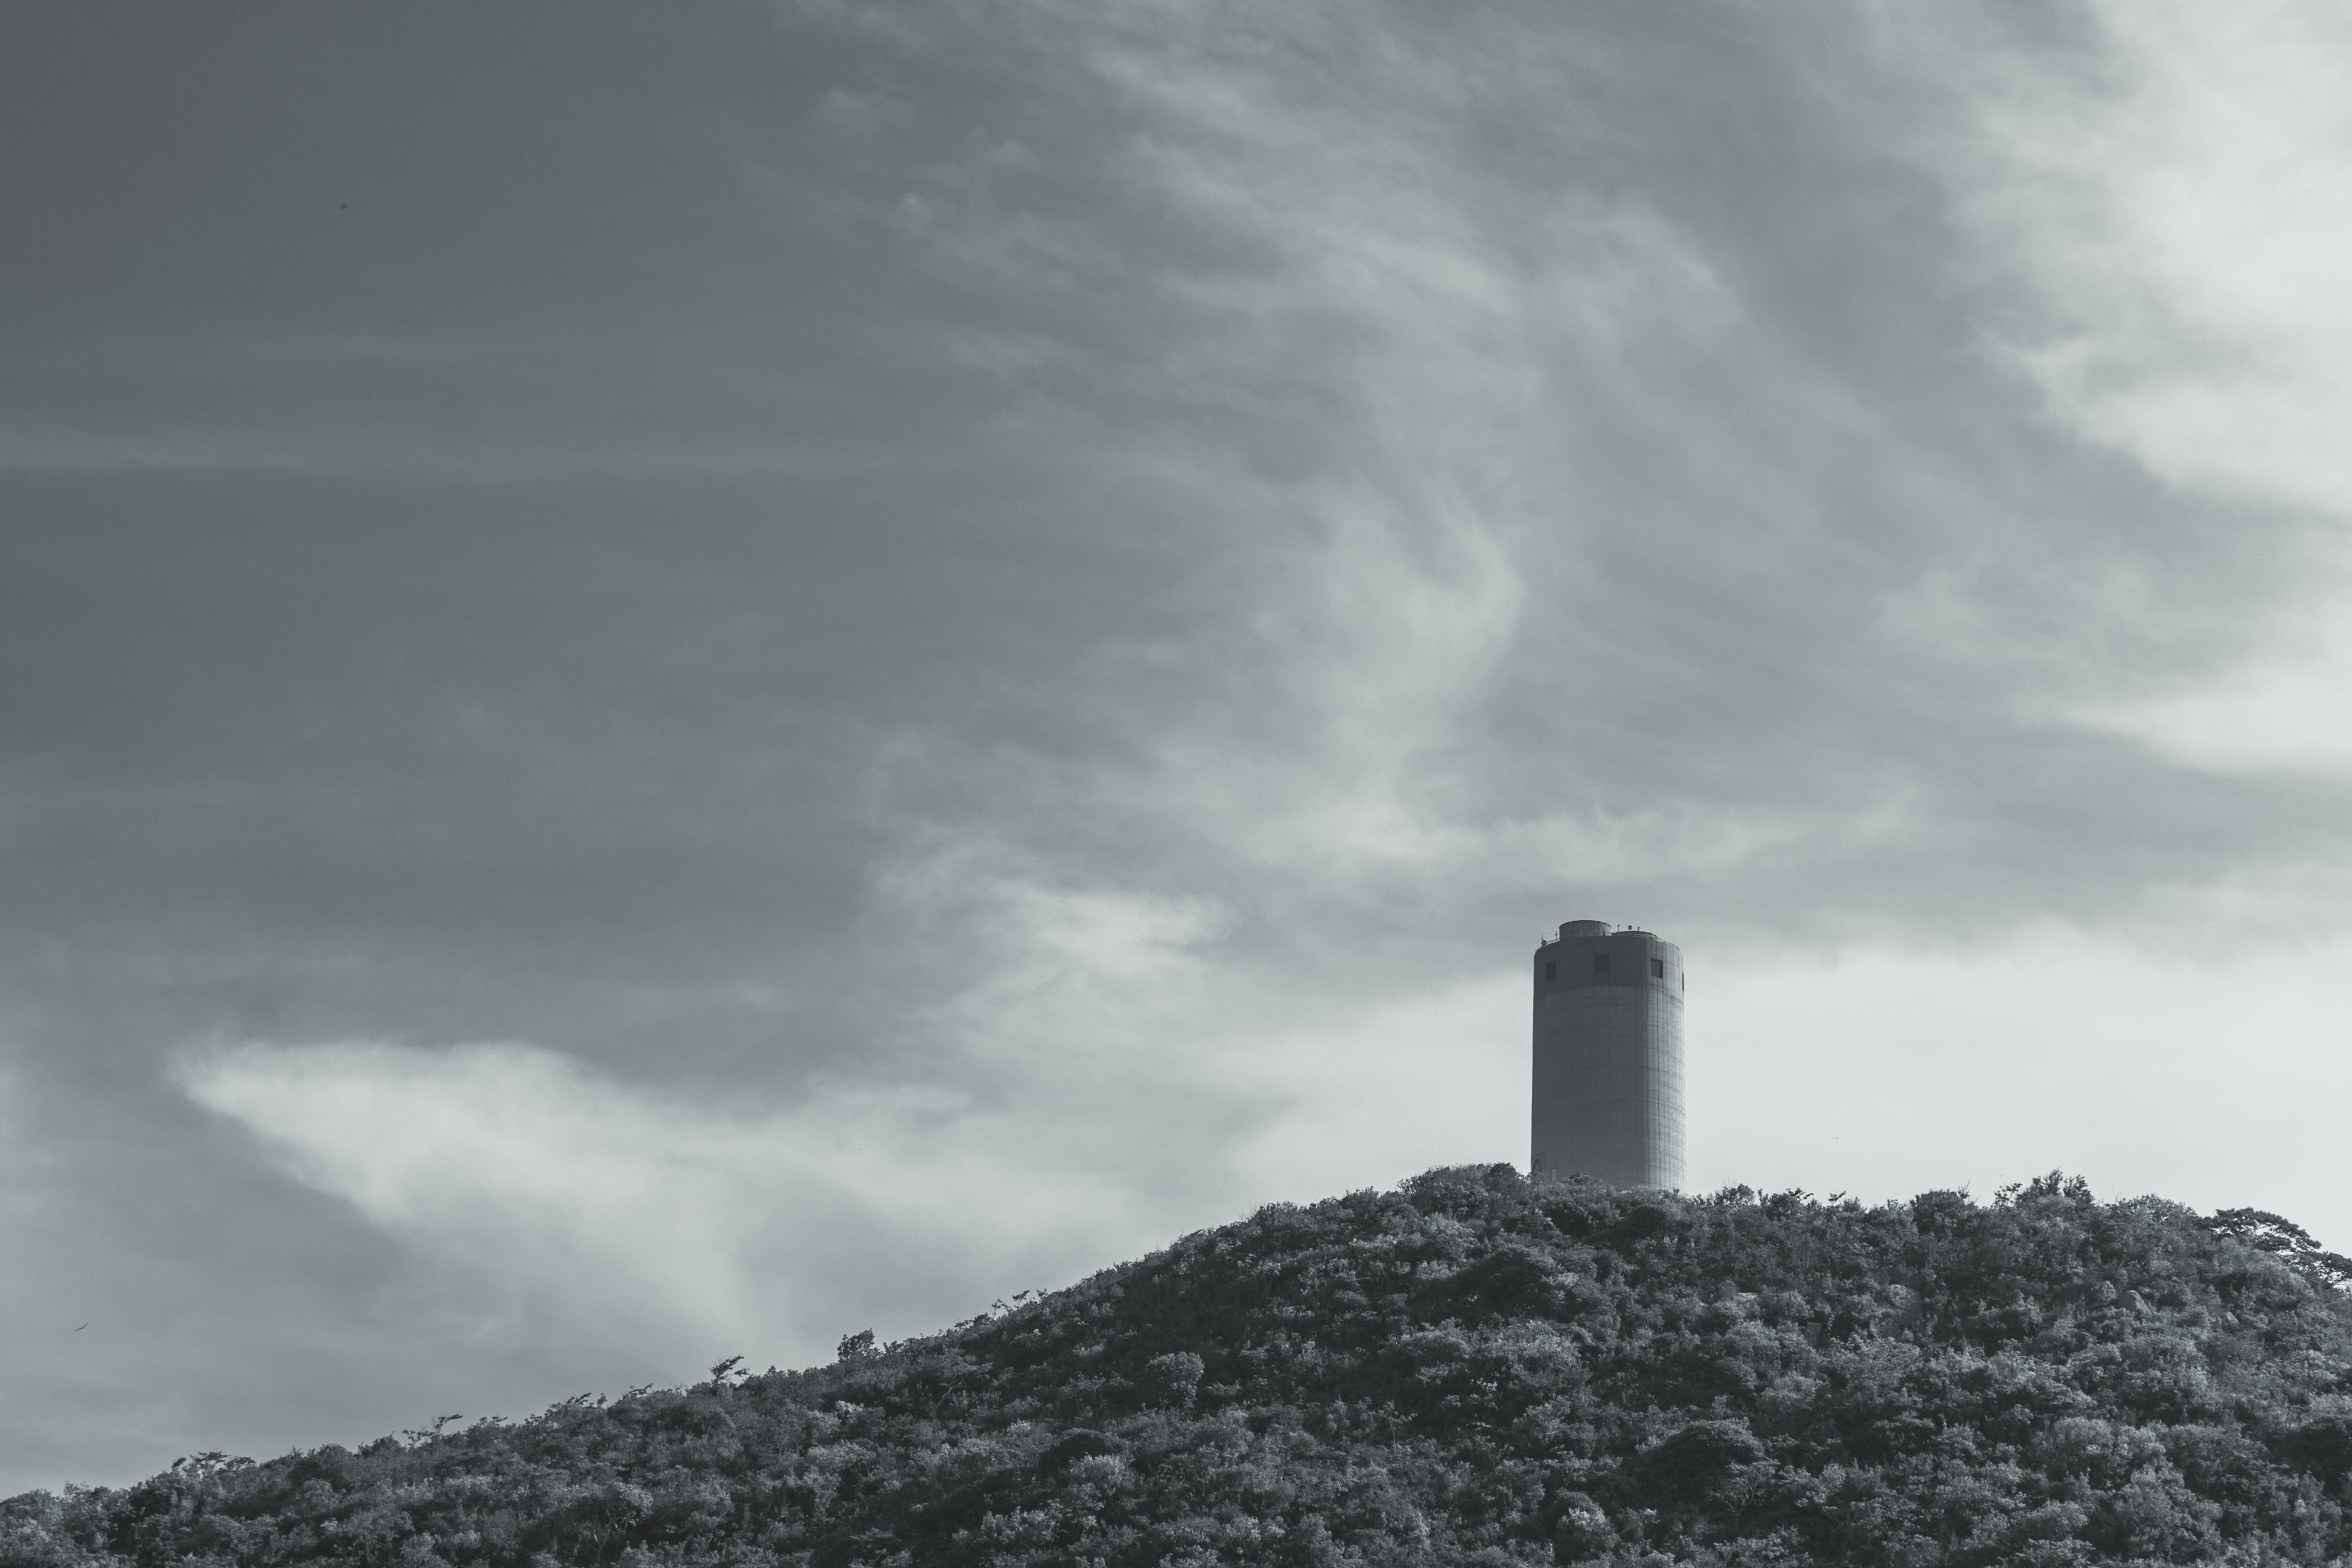 Grayscale Photography of Tower Surrounded by Trees